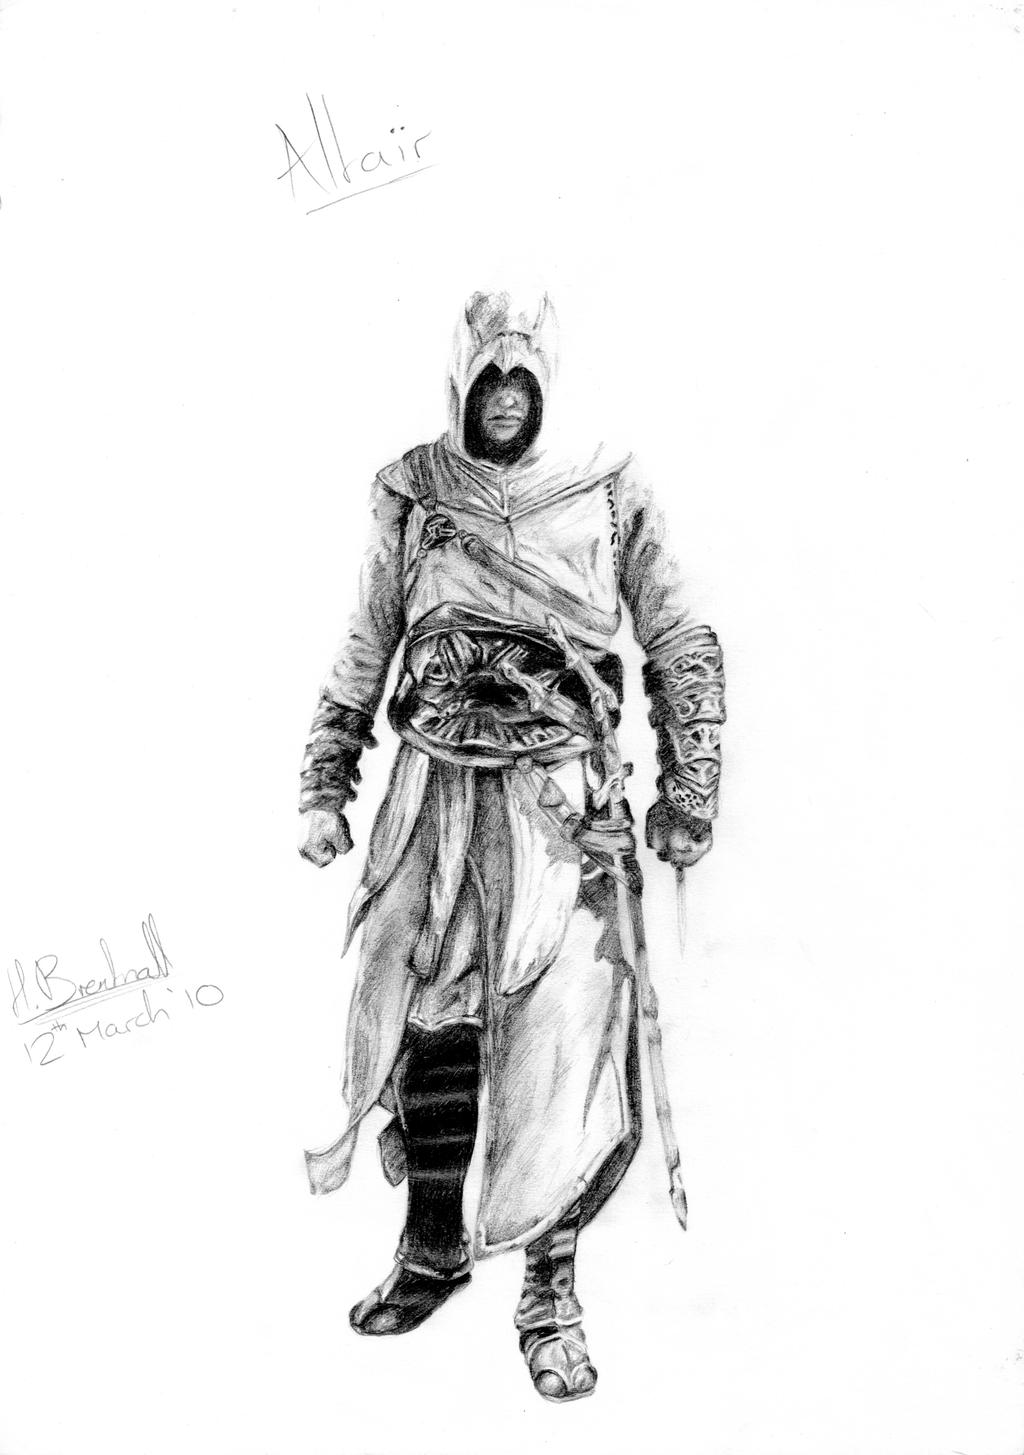 Uncategorized How To Draw Altair altair by panic bladesage on deviantart bladesage